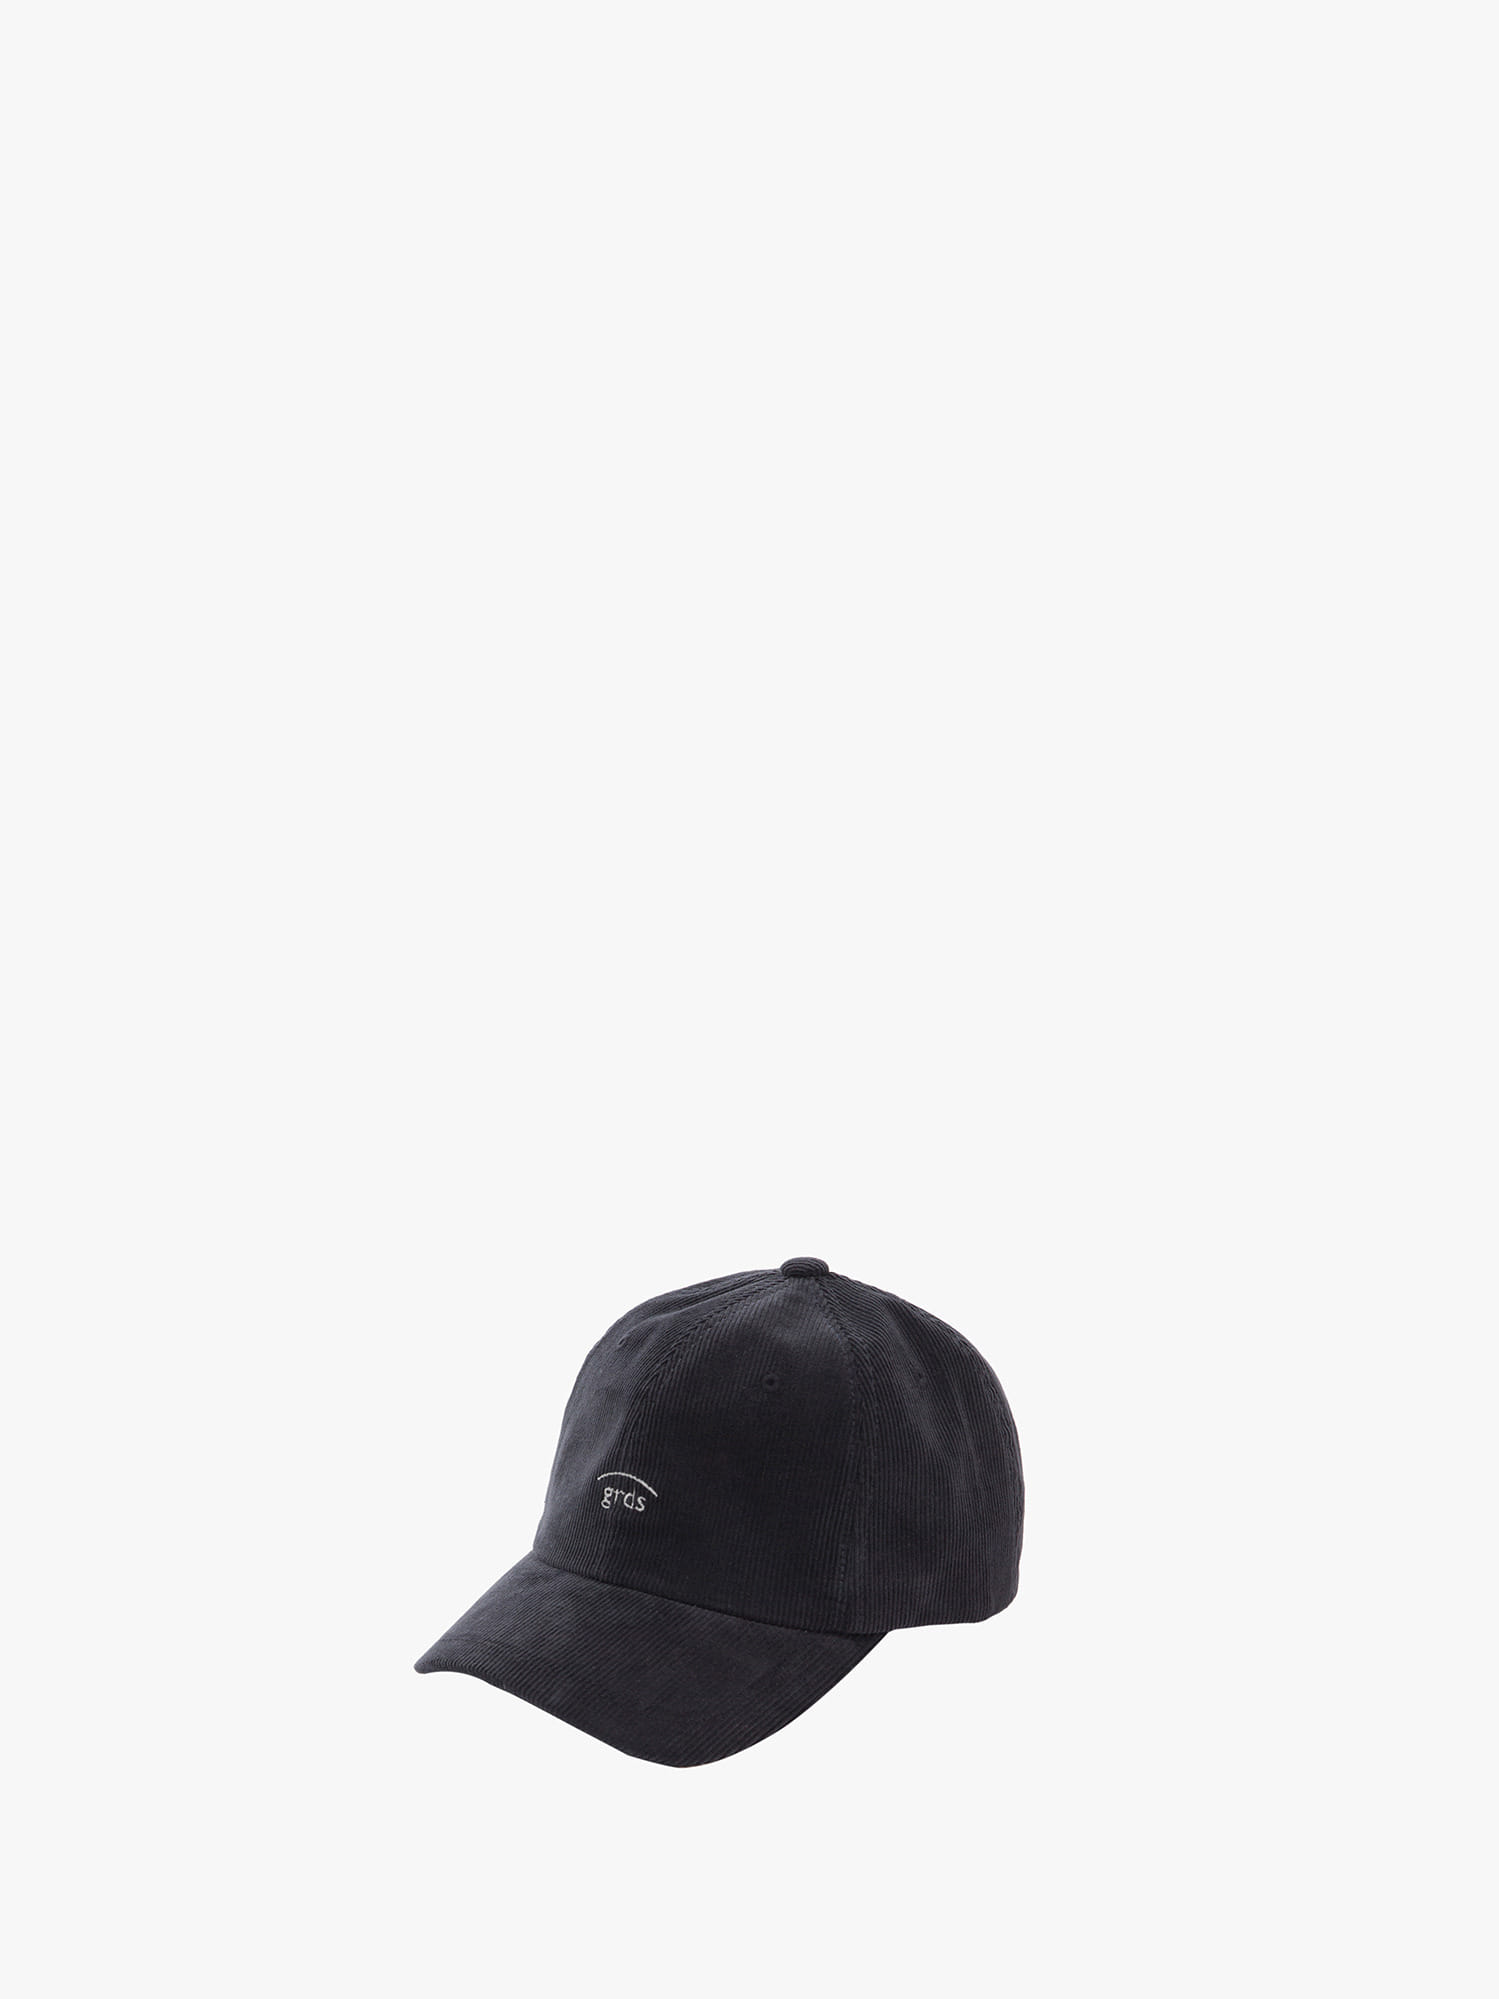 grds ball cap navy